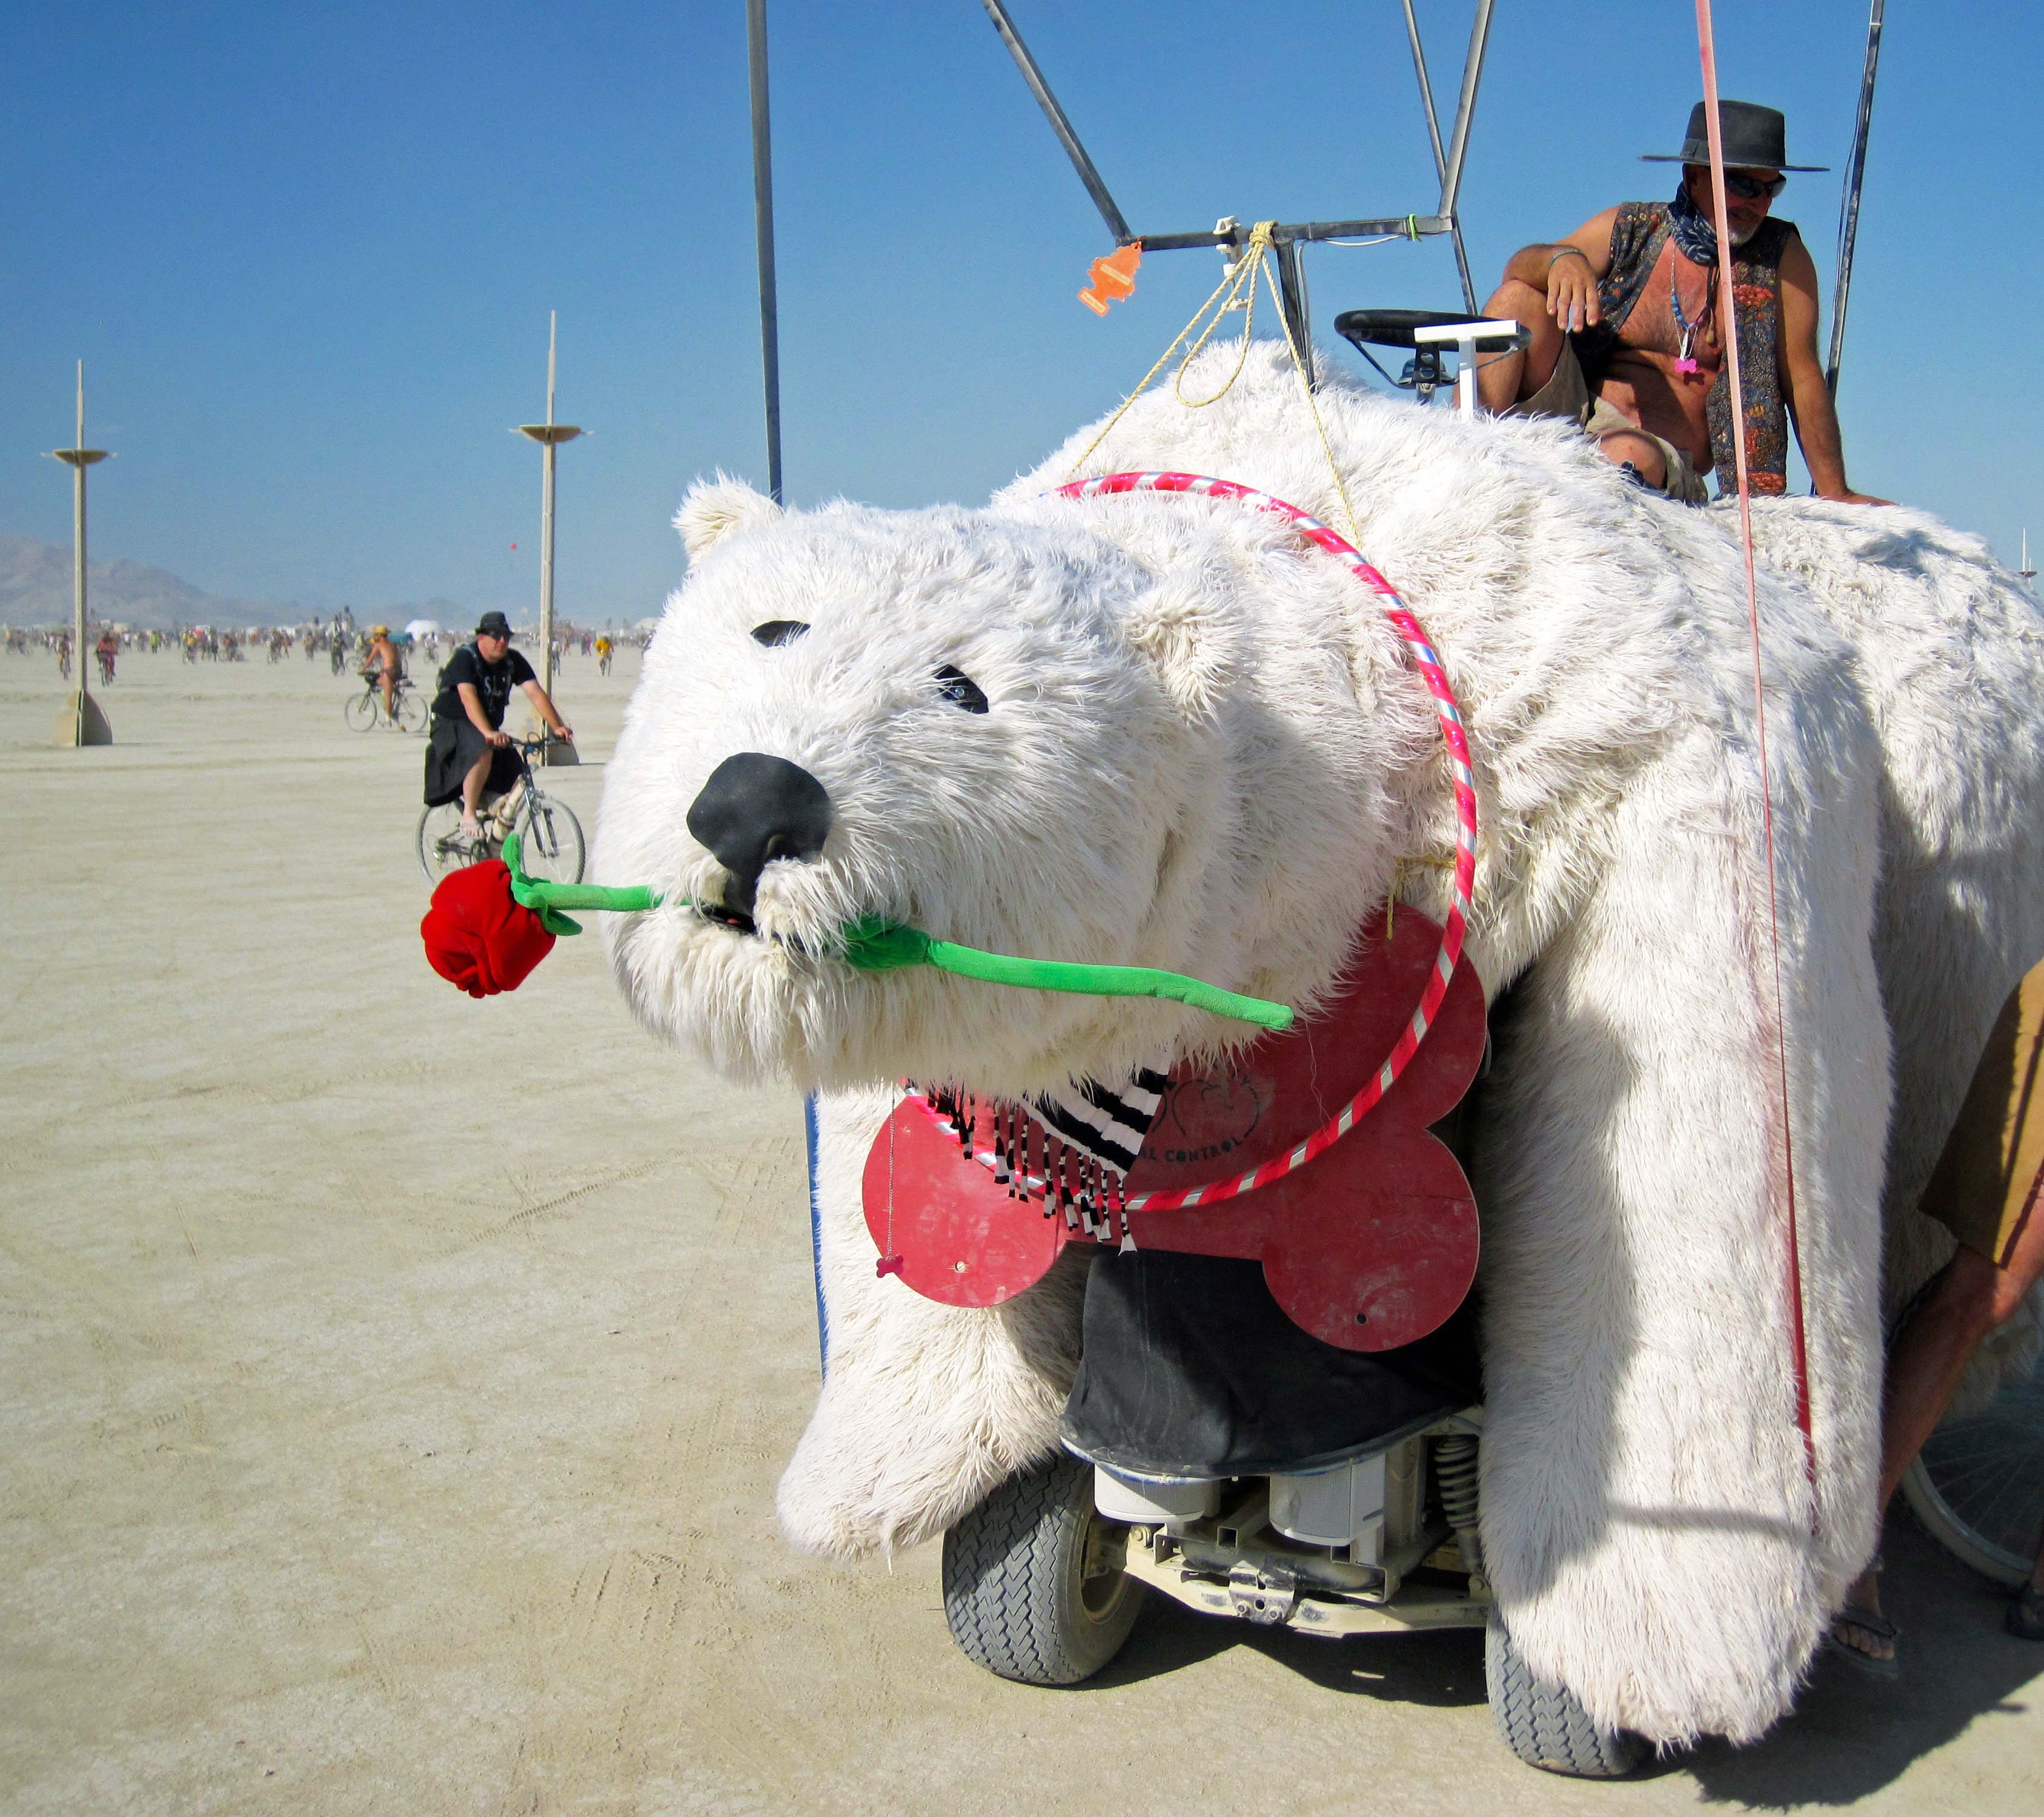 Smaller mutant vehicles often brim over with character, such as this polar bear with its red rose.